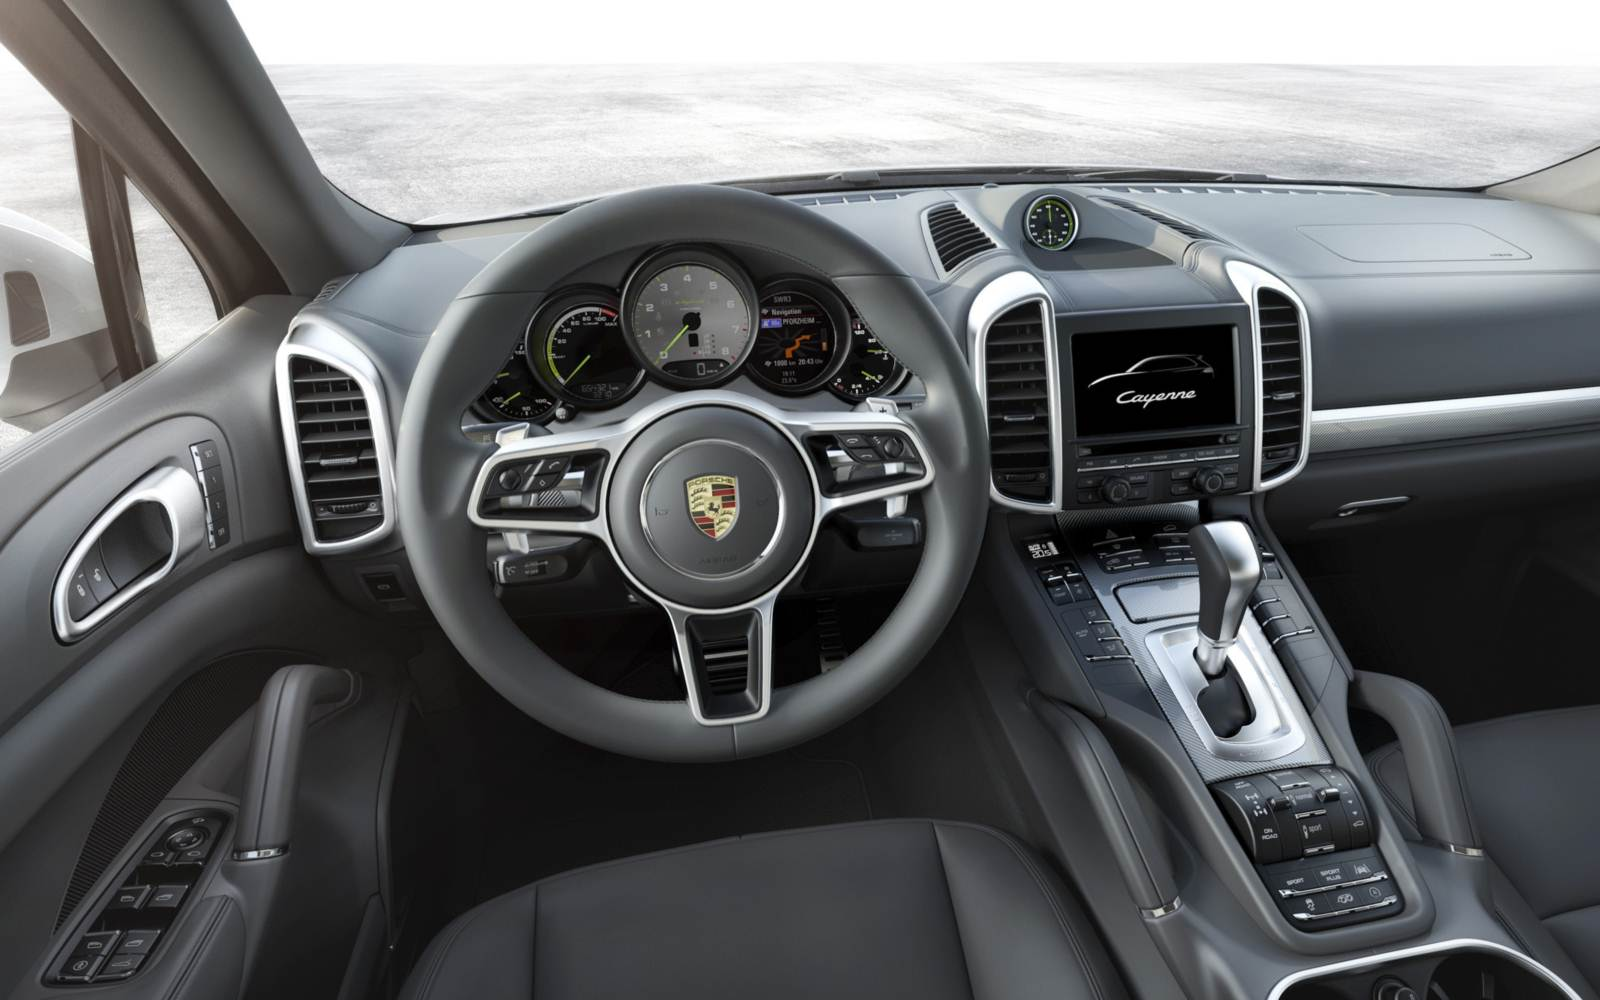 novo porsche cayenne 2015 pre o r 140 mil nos eua car blog br. Black Bedroom Furniture Sets. Home Design Ideas